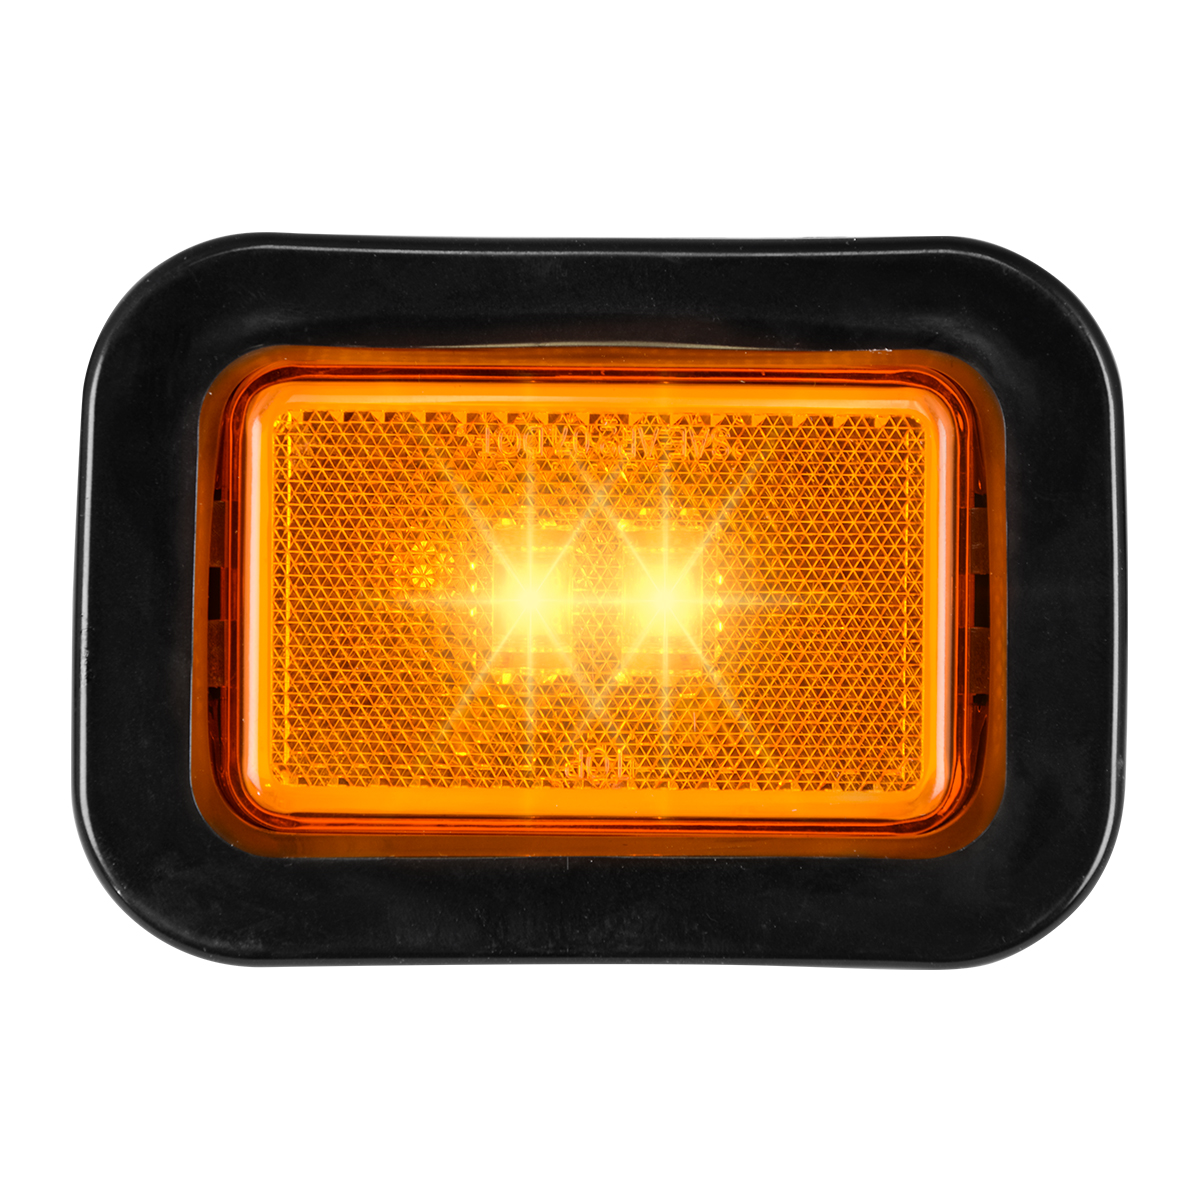 78594 Rectangular Marker LED in Reflector Lens with Grommet and Pigtail